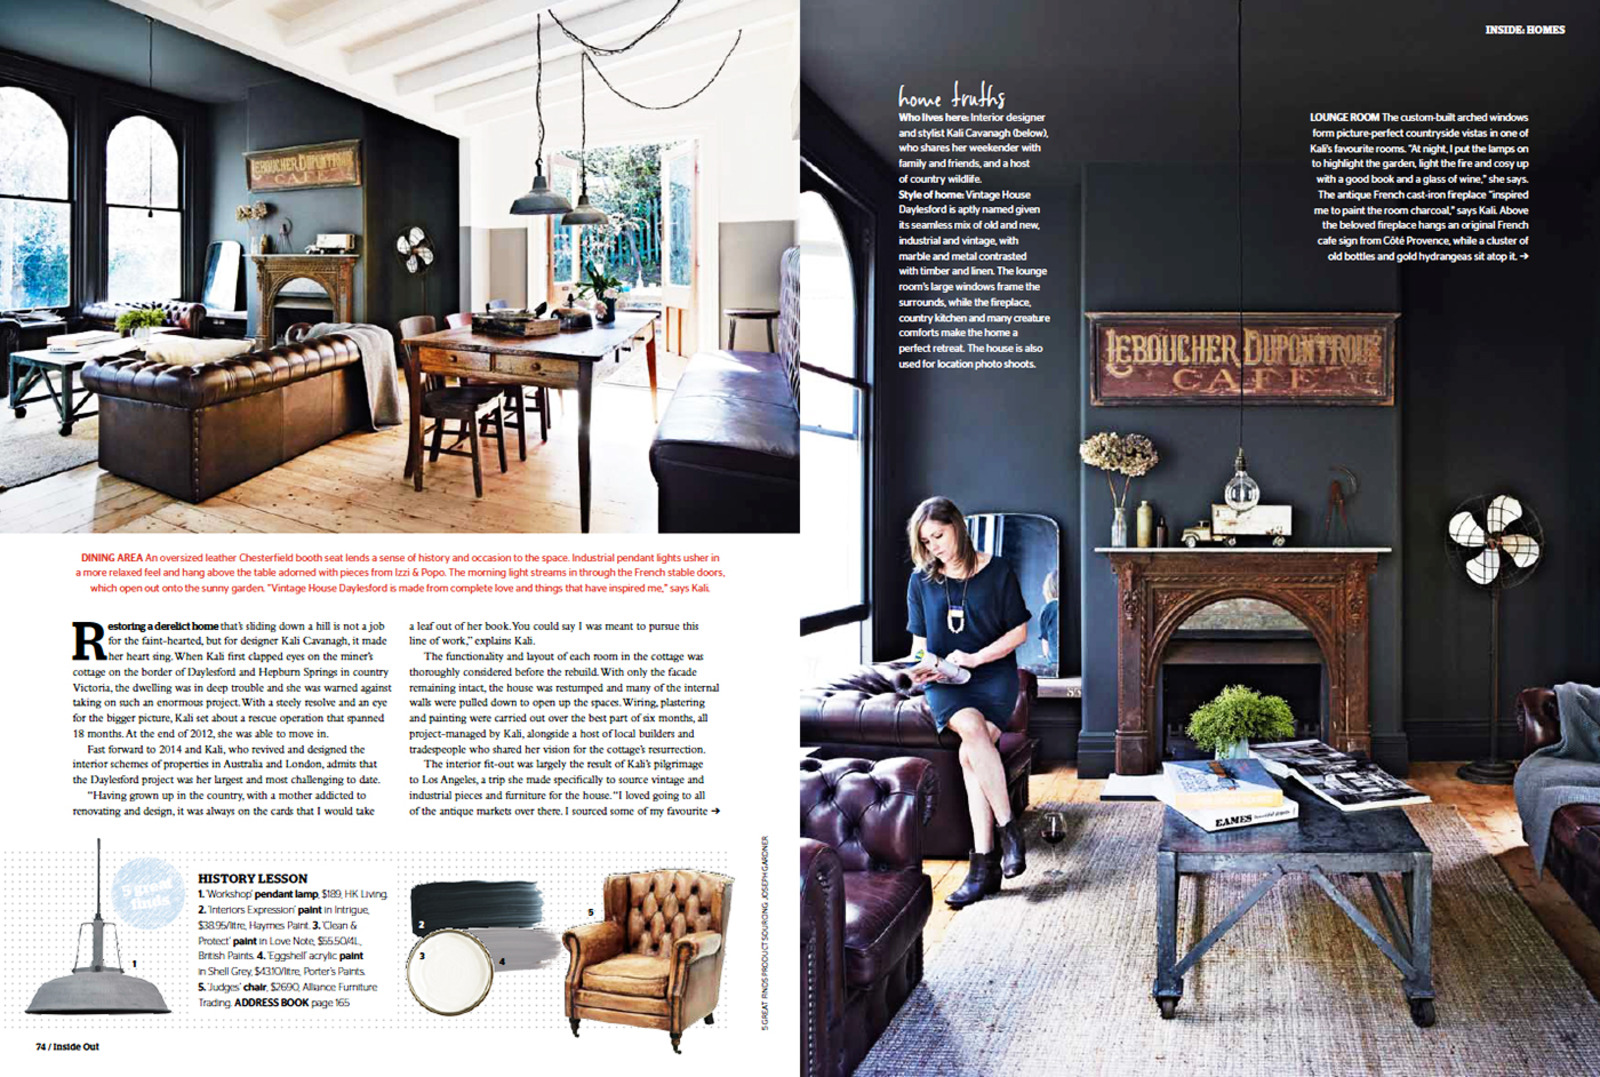 Inside OUT March 2014 Page 2 - Vintage House Daylesford Kali Cavanagh.jpg